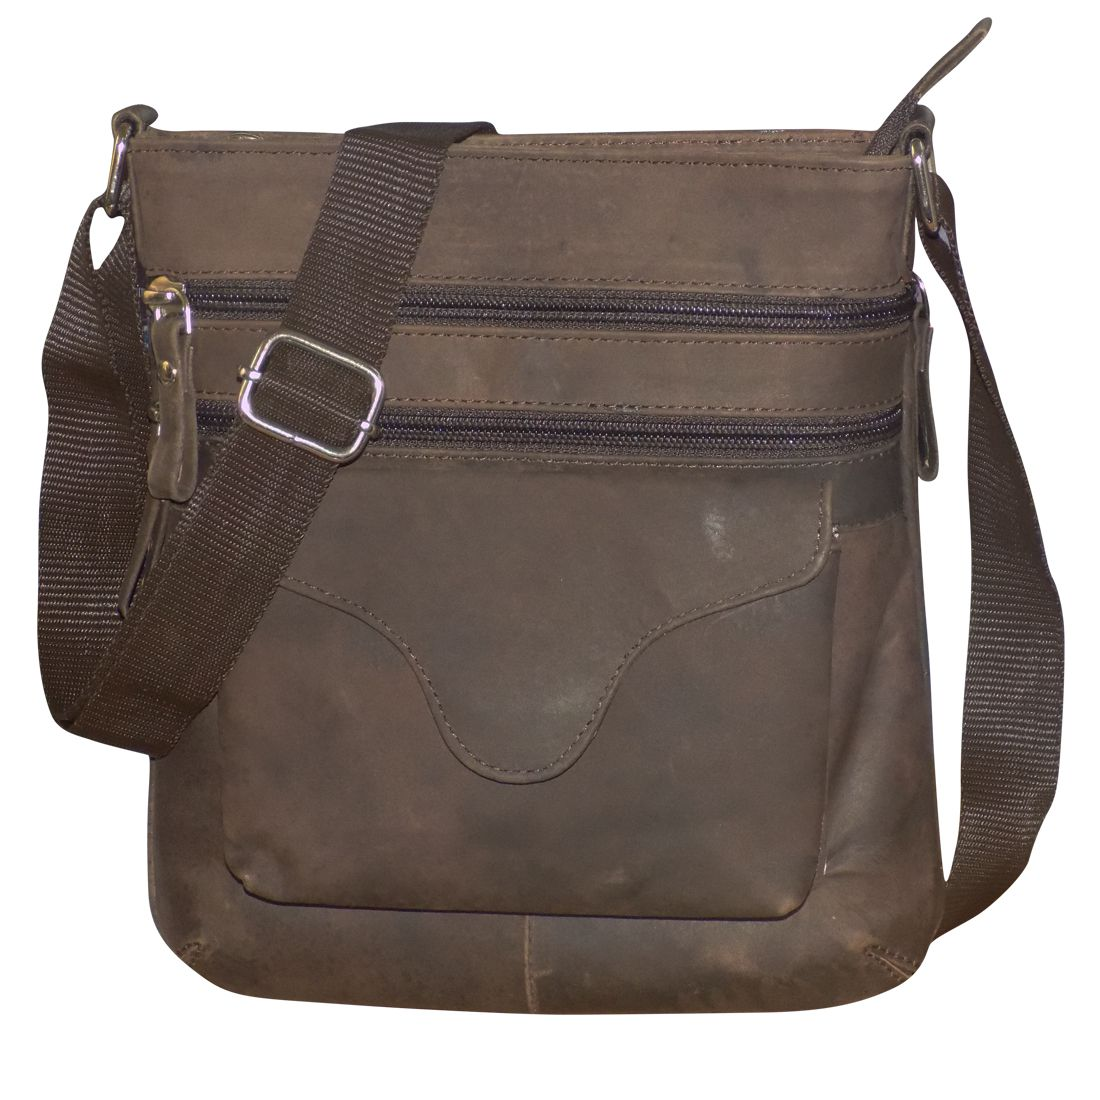 Style 98 Brown Leather Casual Messenger Bag